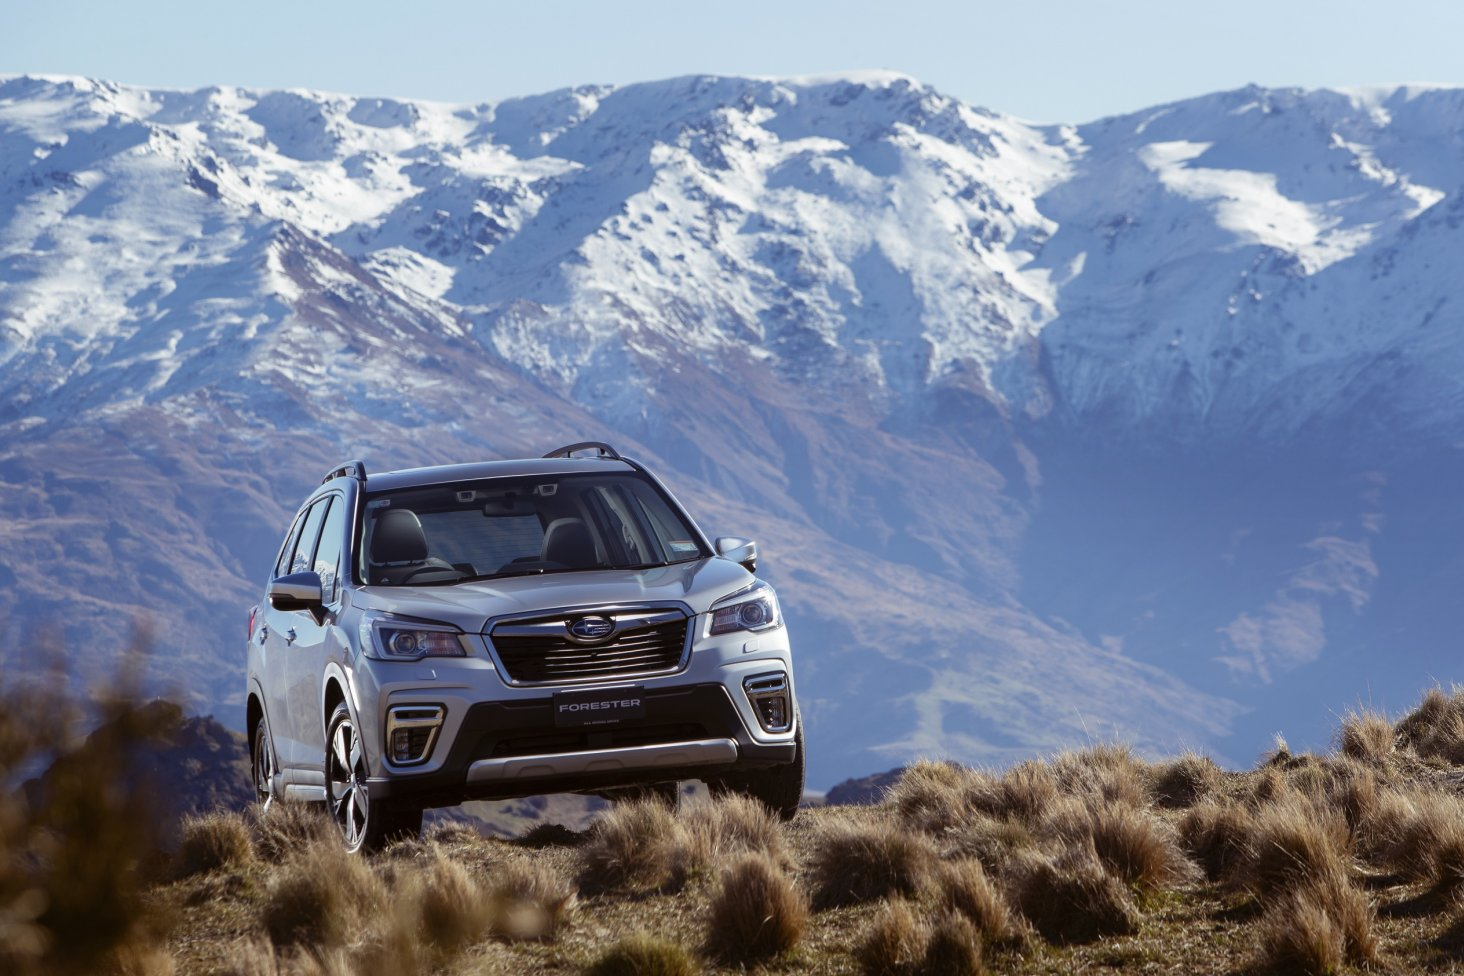 Upgrade Your Family S Fun With The 2019 Subaru Forester Subaru Of